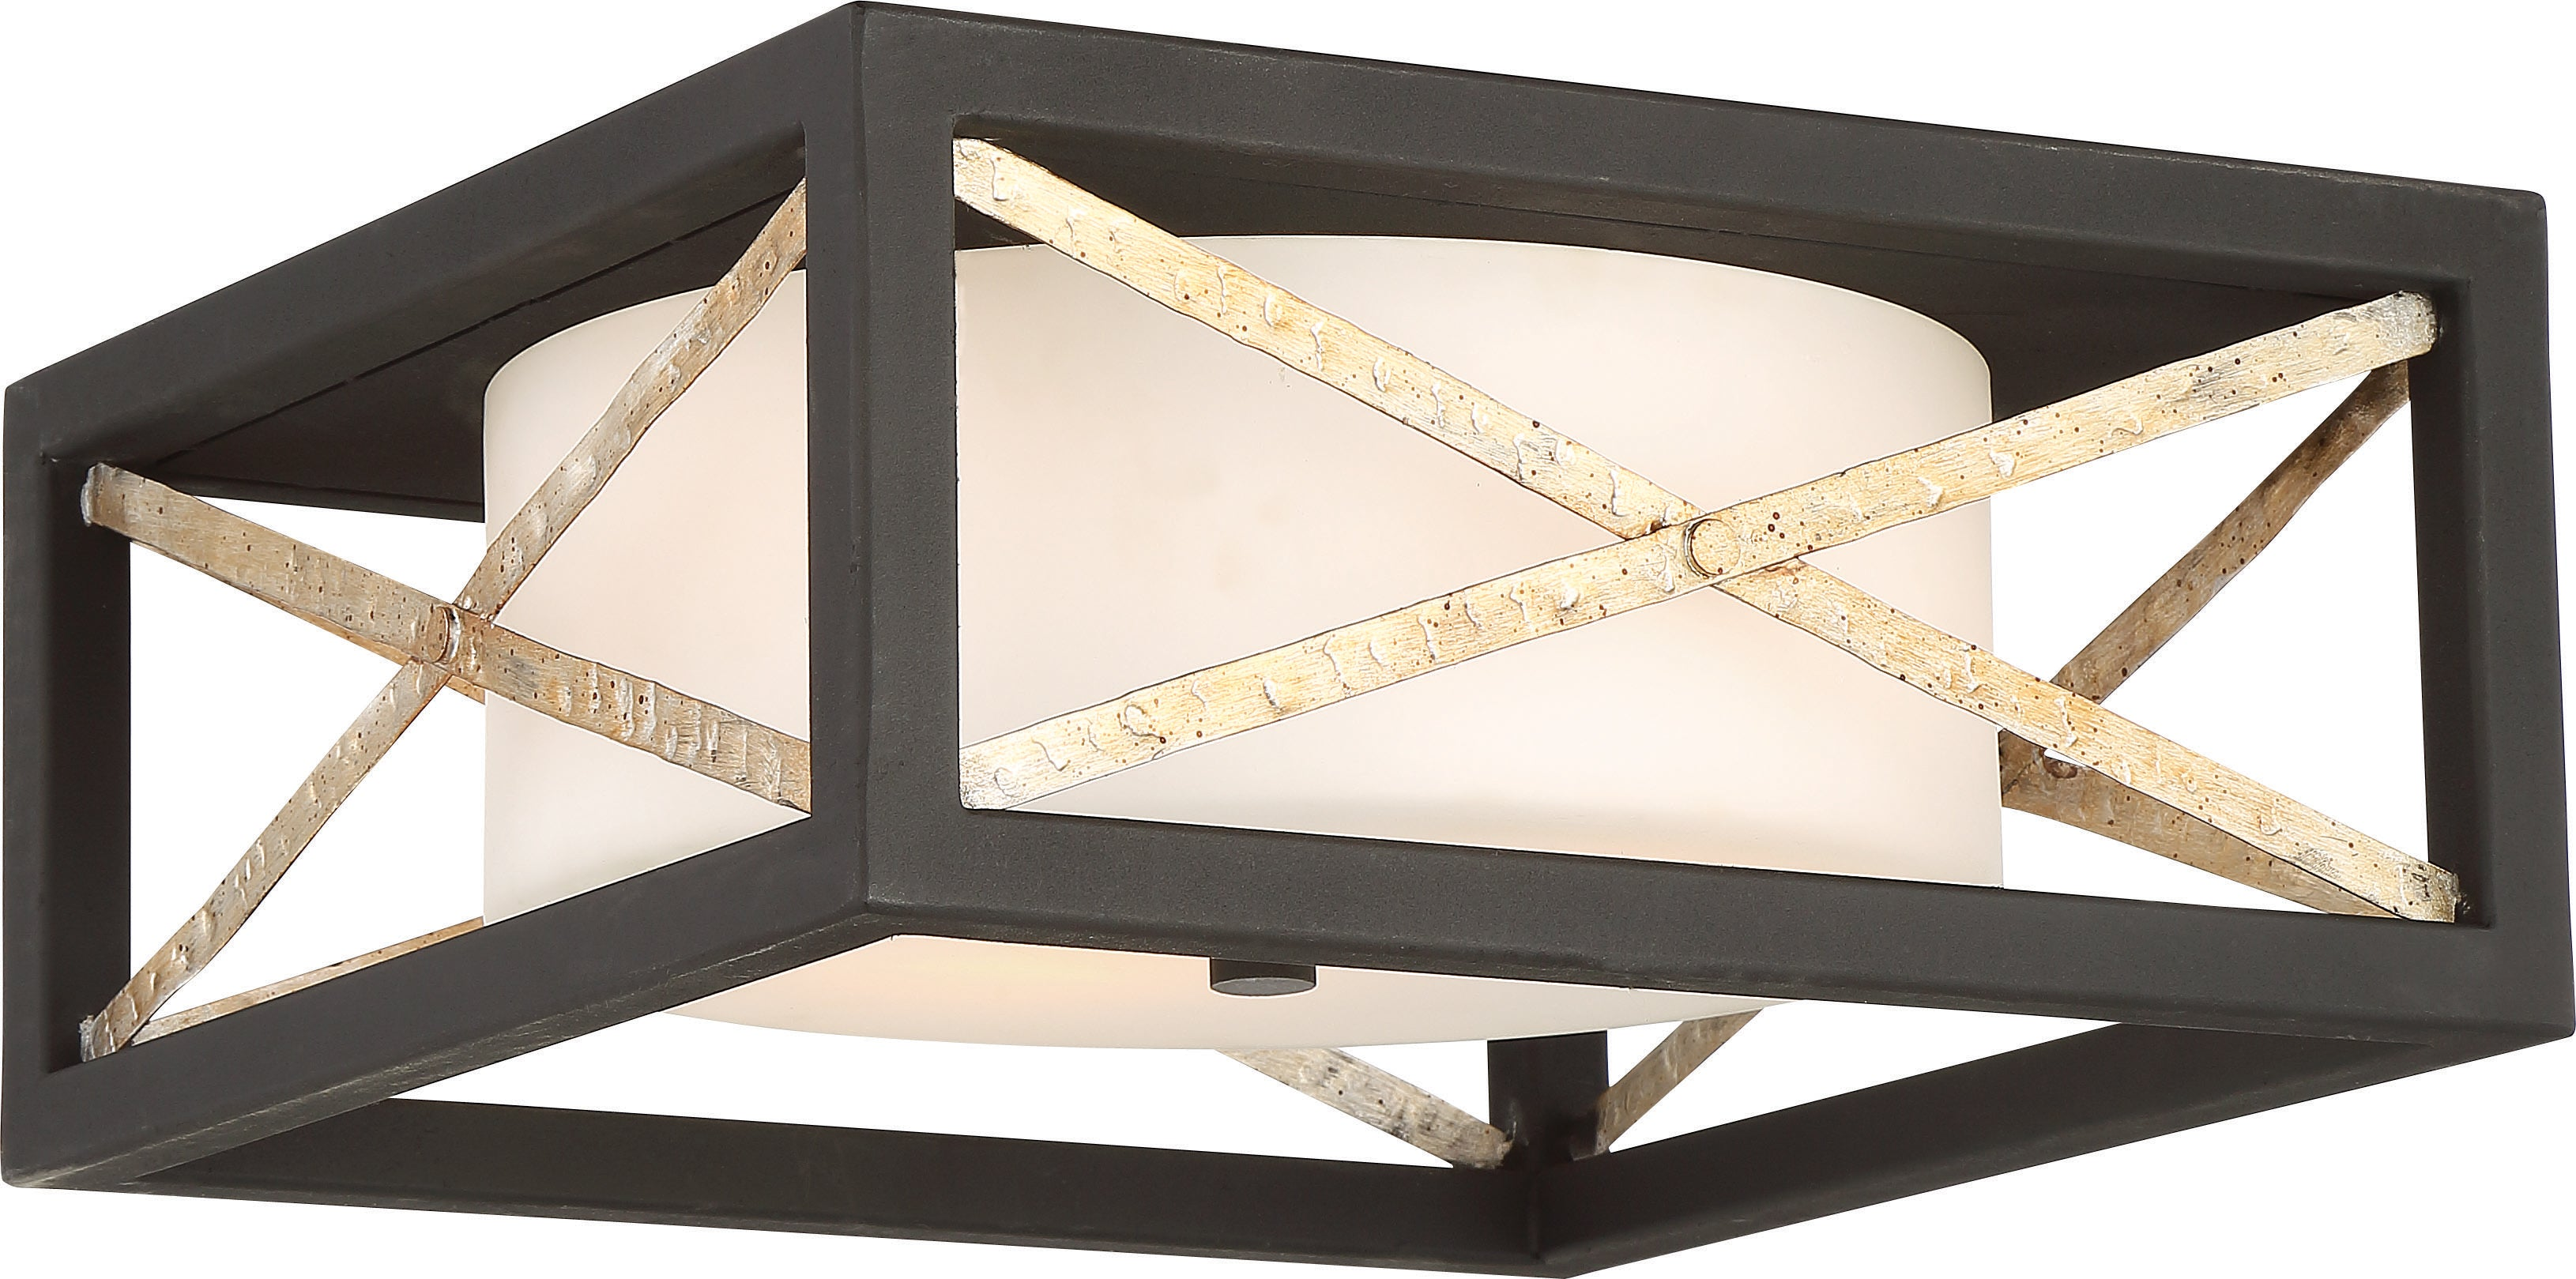 Boxer 2-Light Flush Mounted in Matte Black / Antique Silver Accents Finish